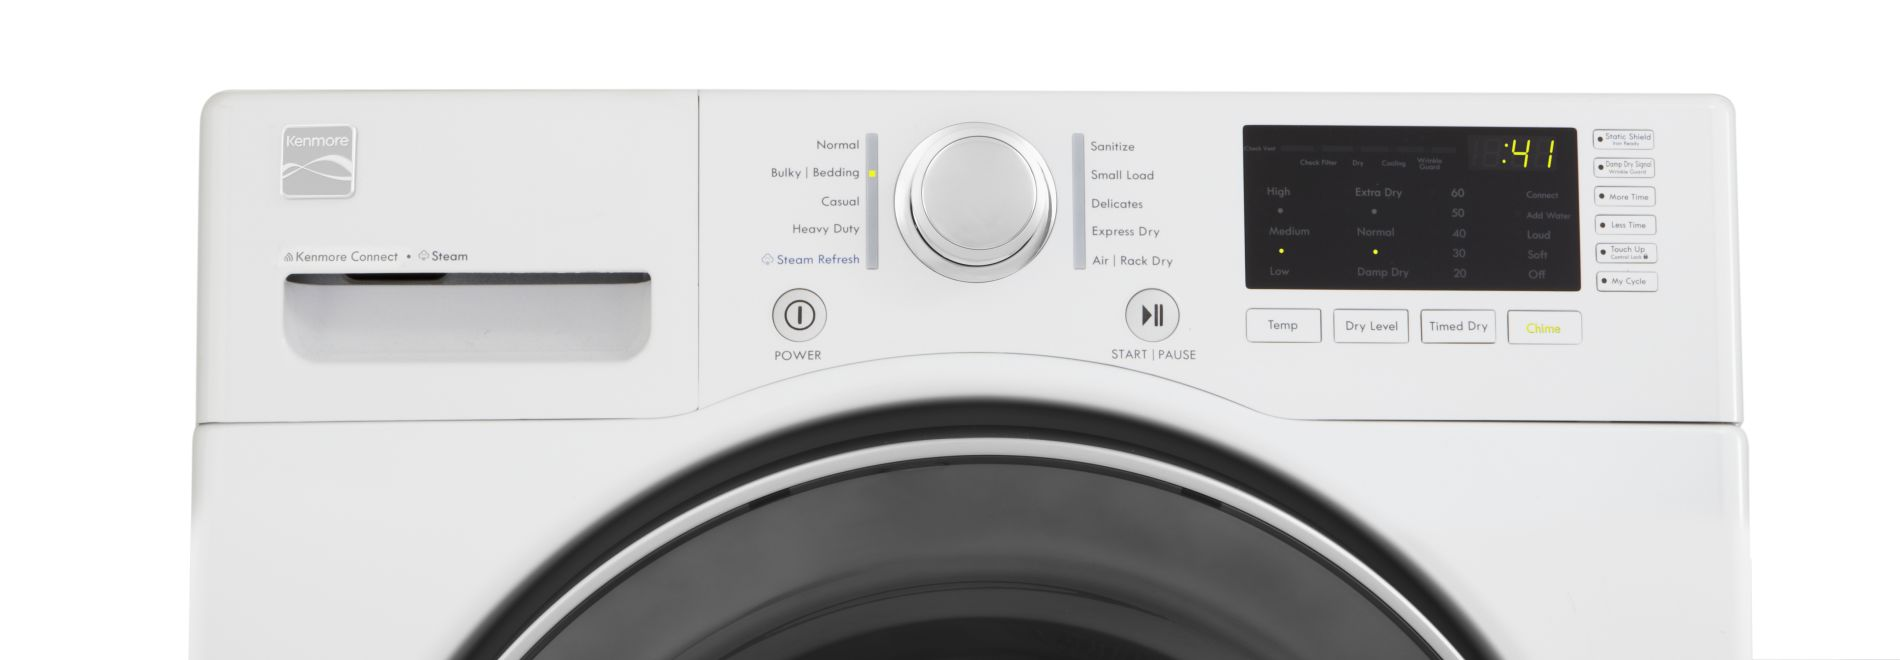 Kenmore 7.3 cu. ft. Electric Dryer with Sensor Dry - White